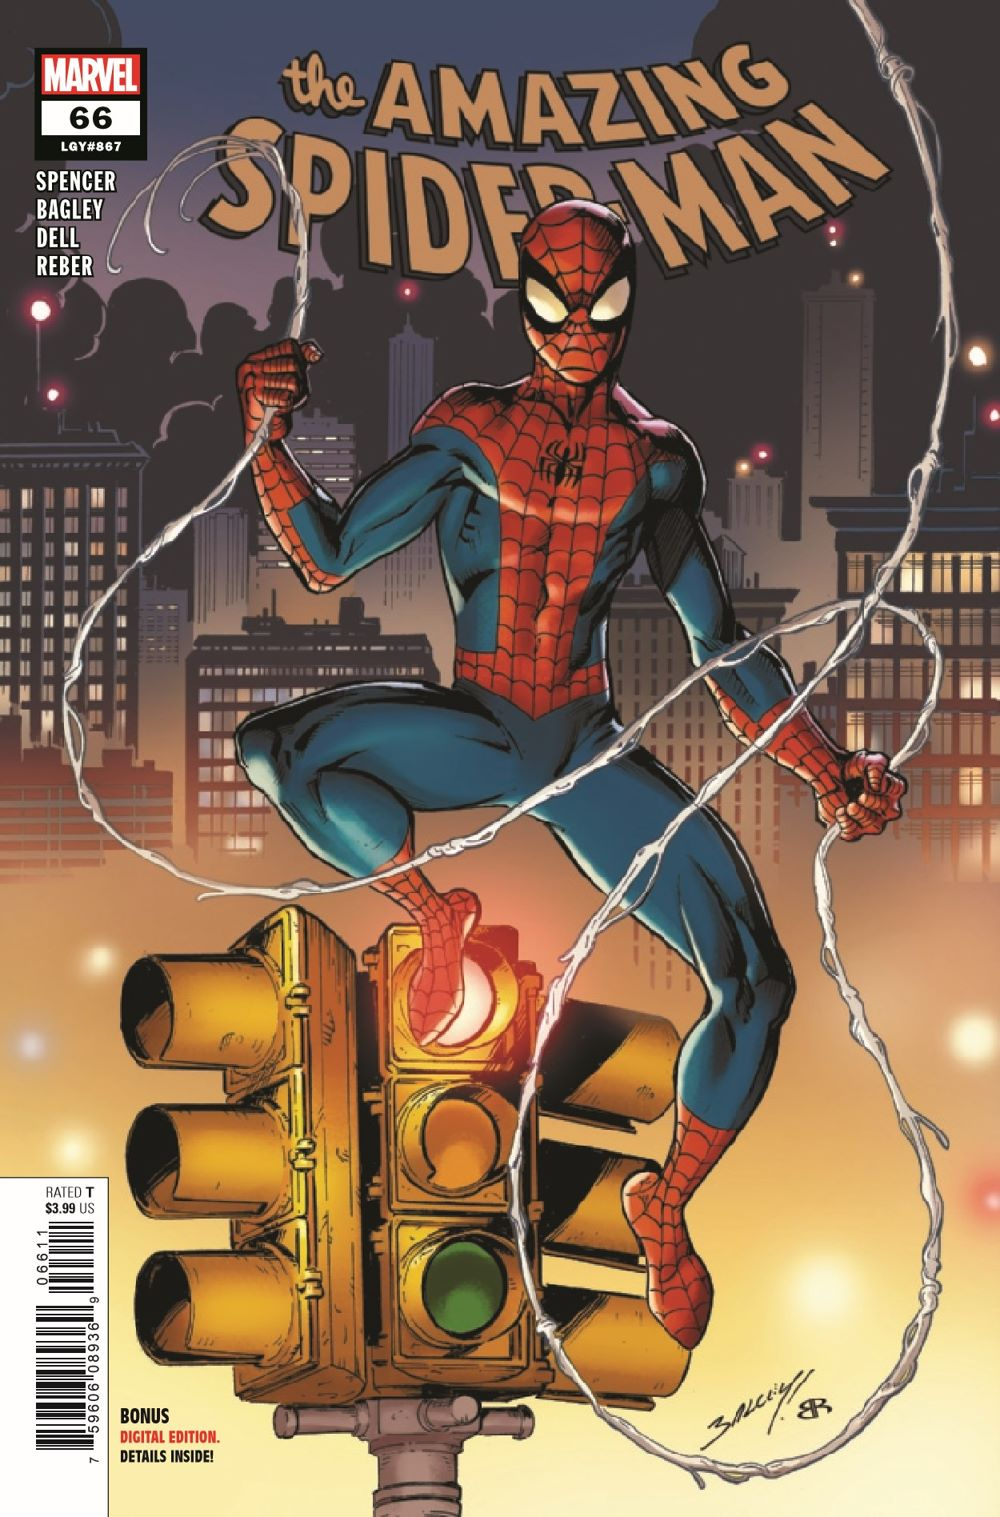 ASM2018066_Preview-1 ComicList Previews: THE AMAZING SPIDER-MAN #66